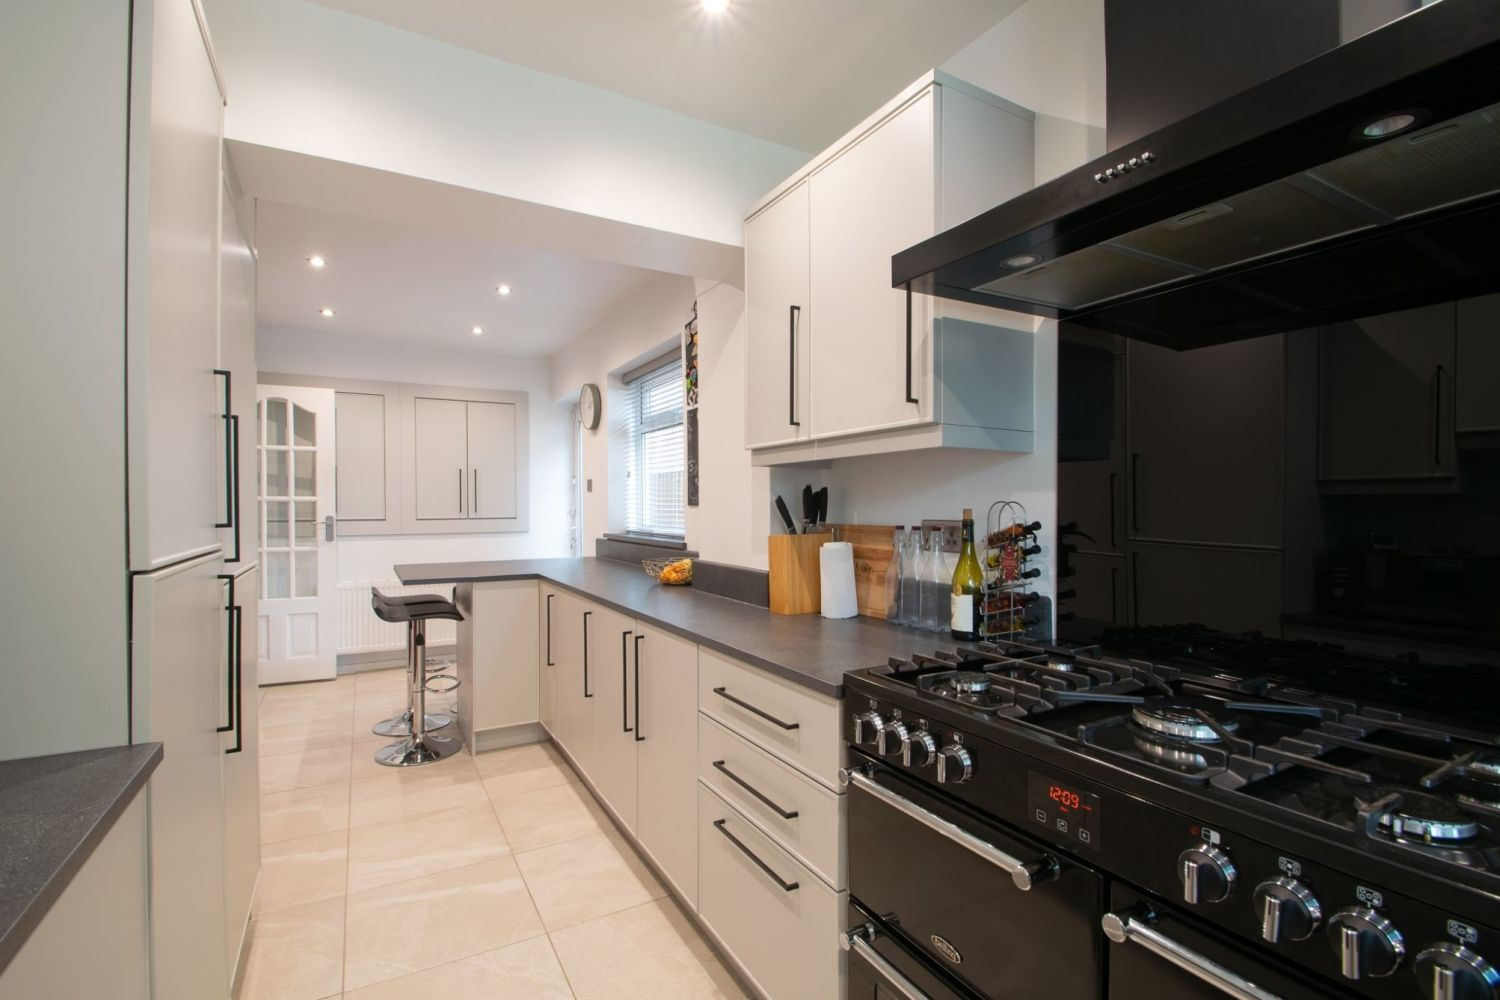 3 bed detached for sale in Clyde Avenue, Halesowen  - Property Image 11